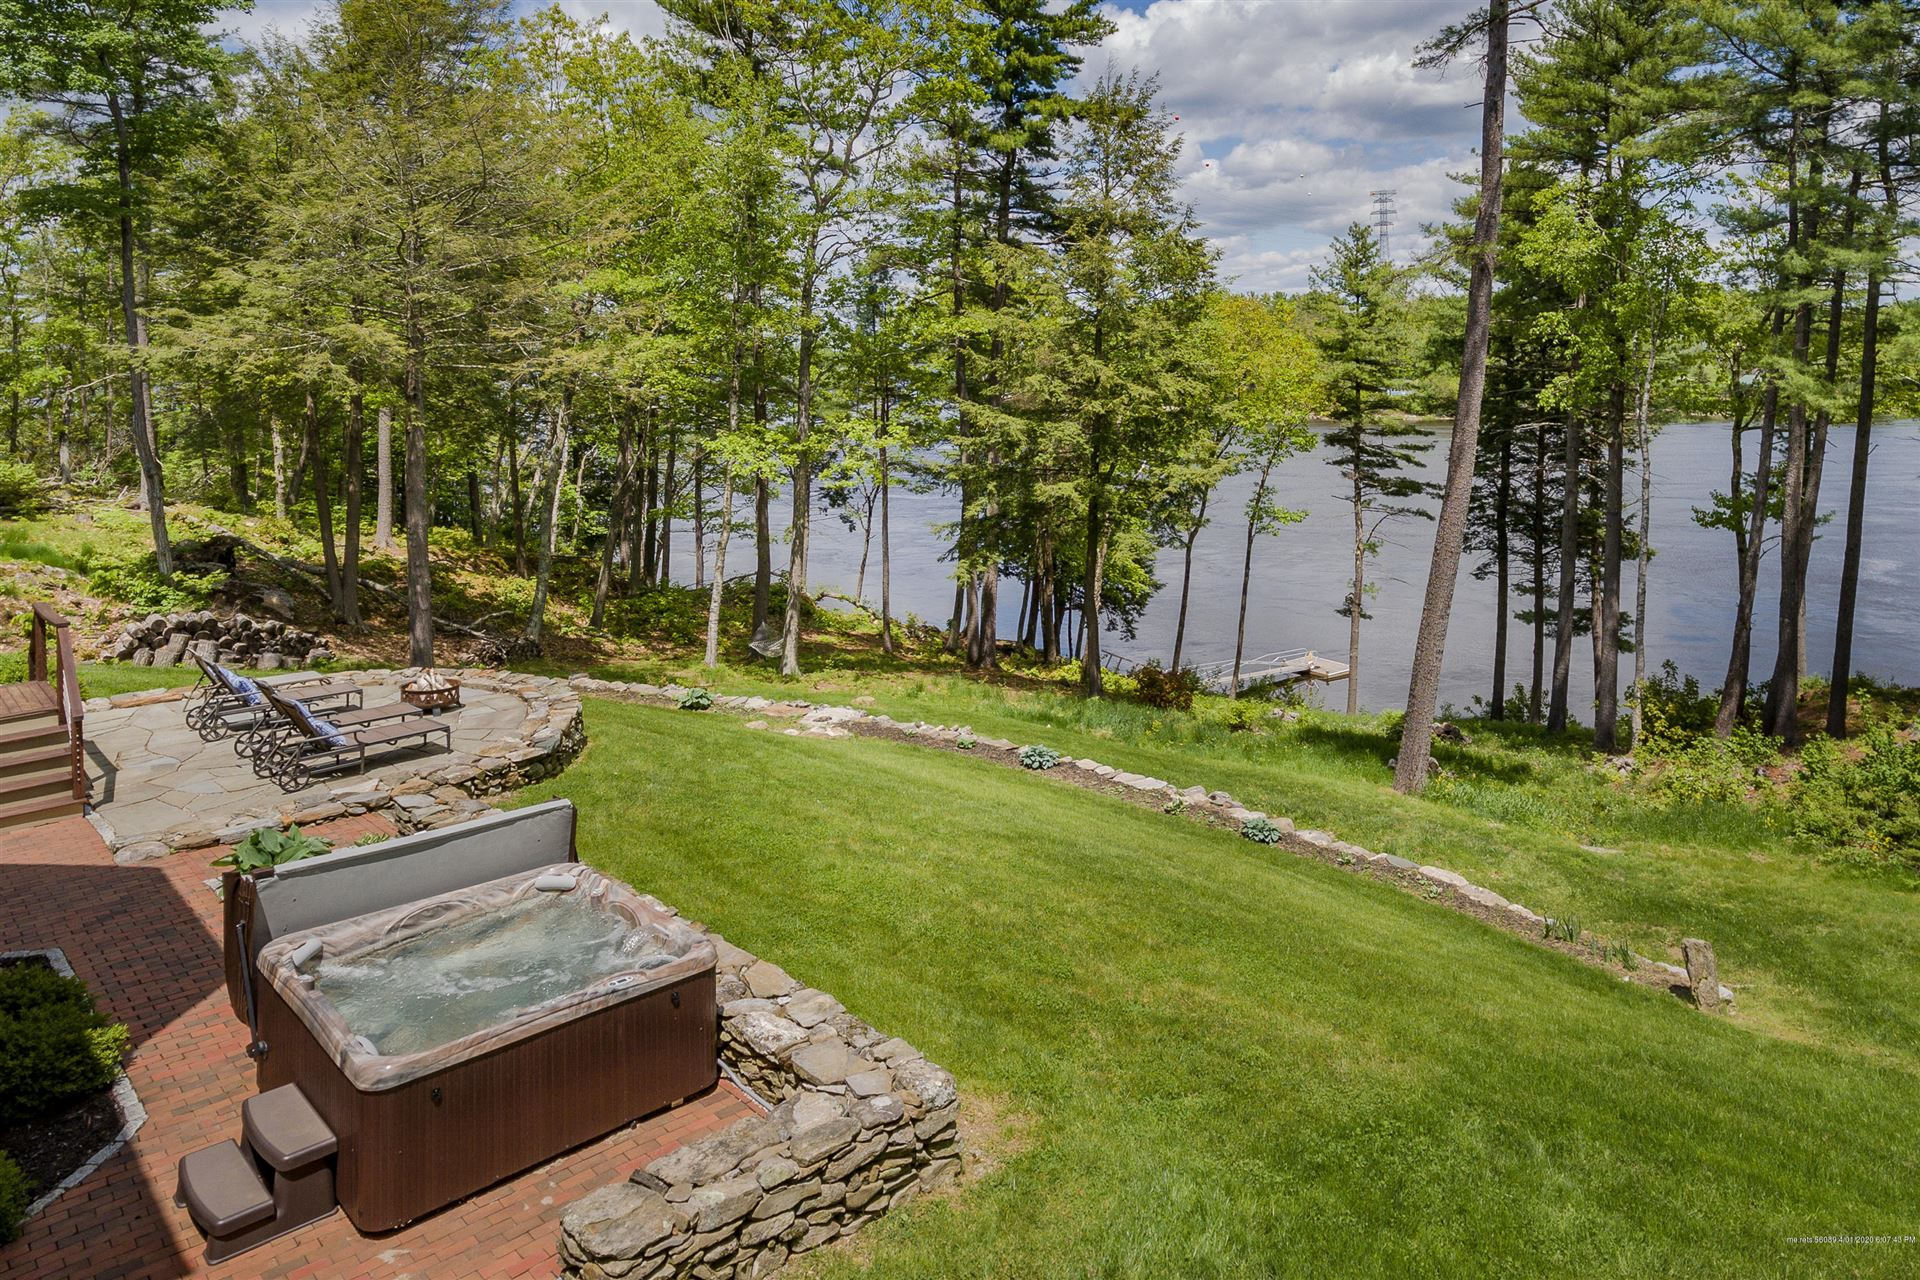 Photo of 51 West Chops Point Road, Bath, ME 04530 (MLS # 1443328)